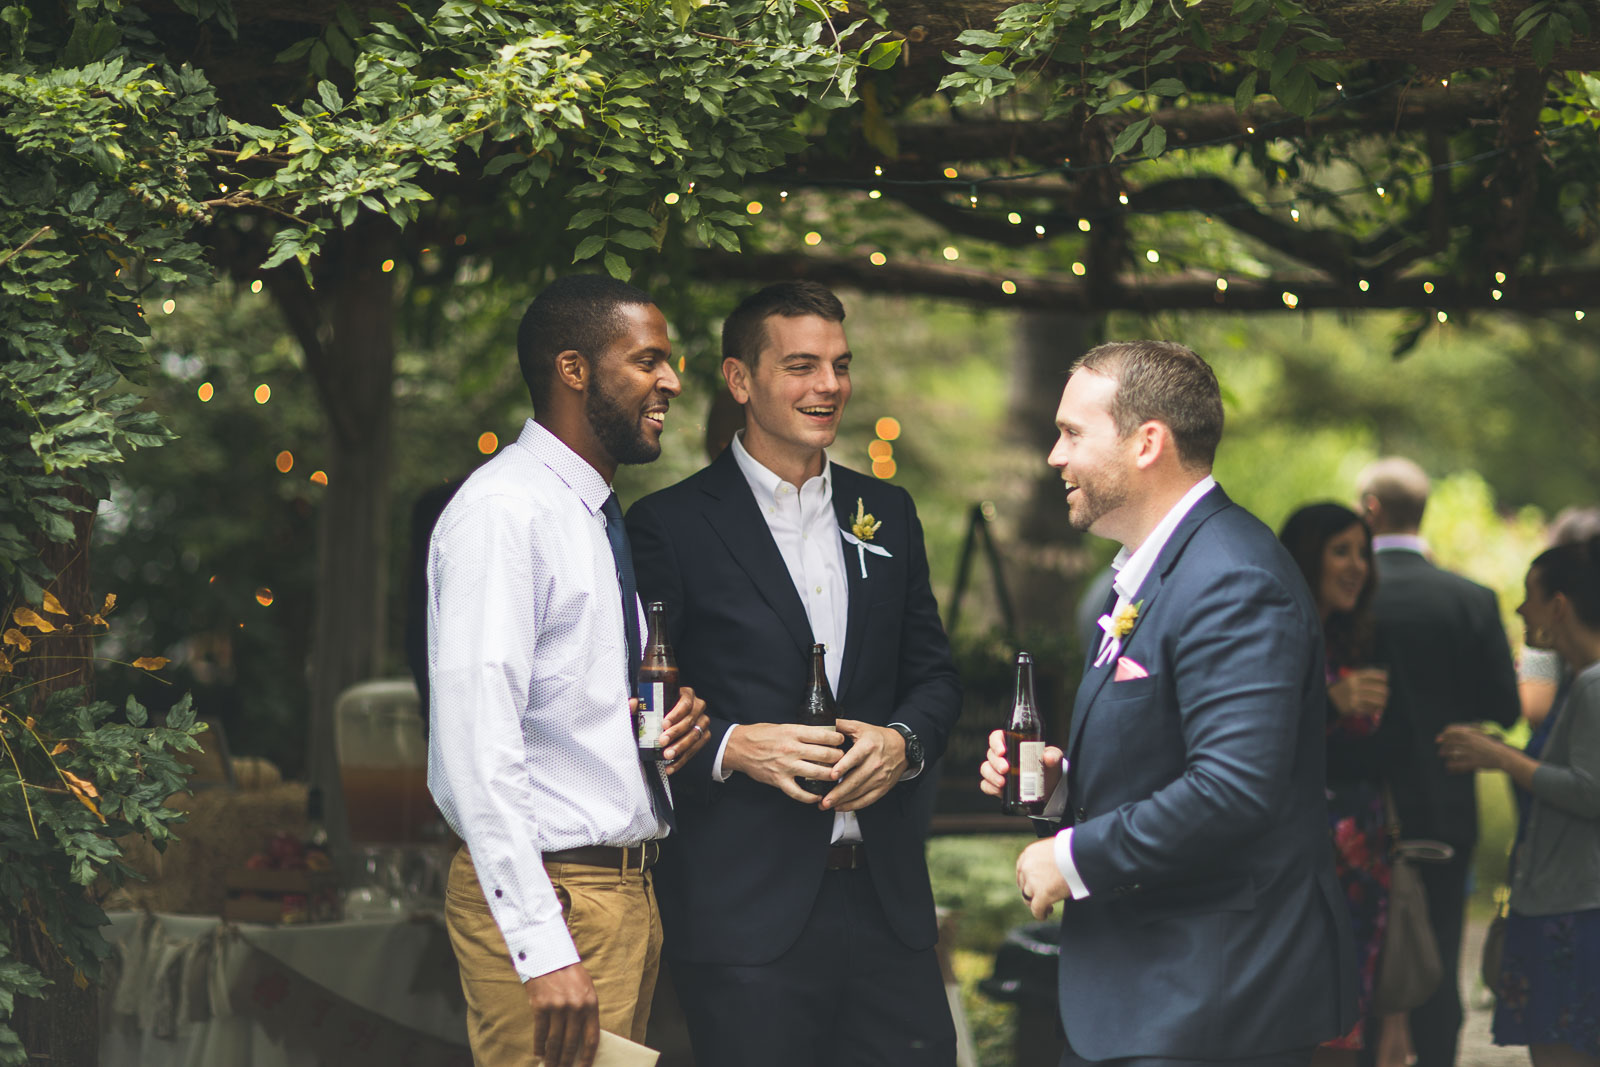 Groom Laughs Before Ceremony